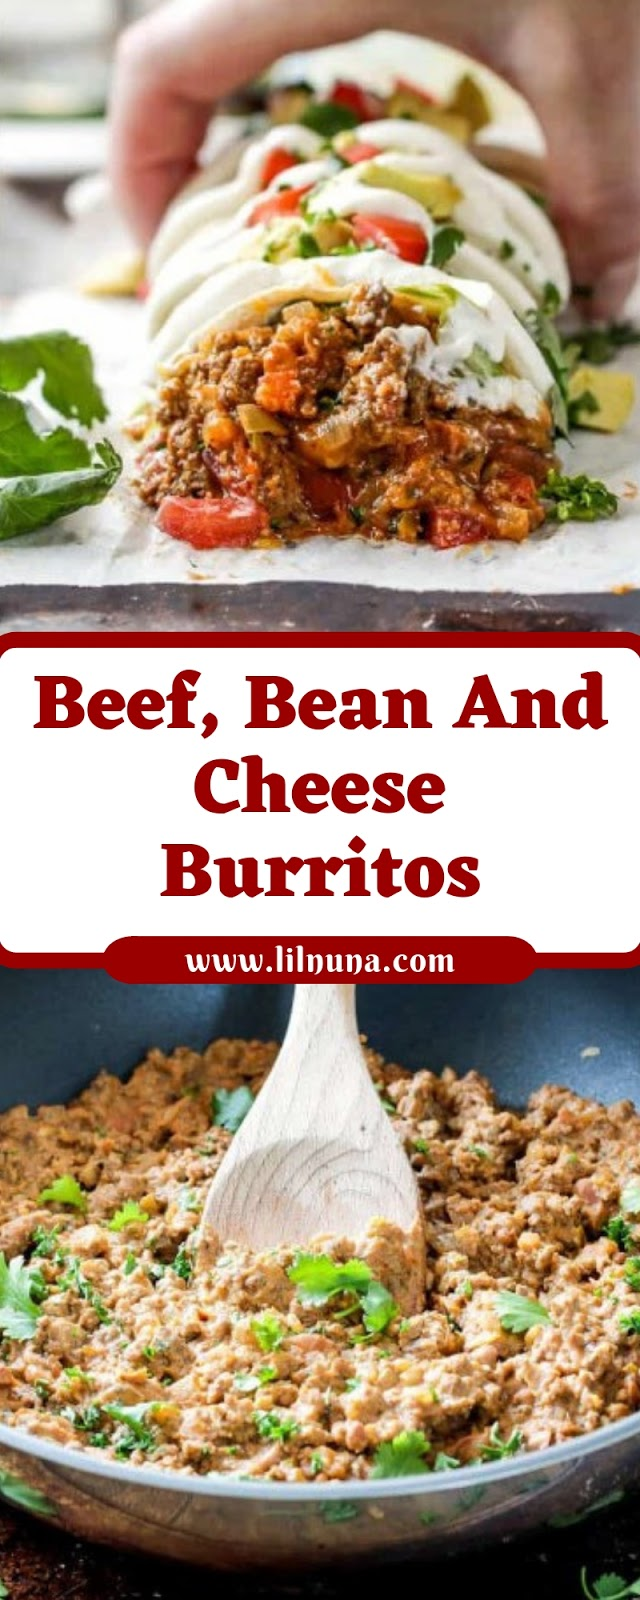 Beef, Bean And Cheese Burritos